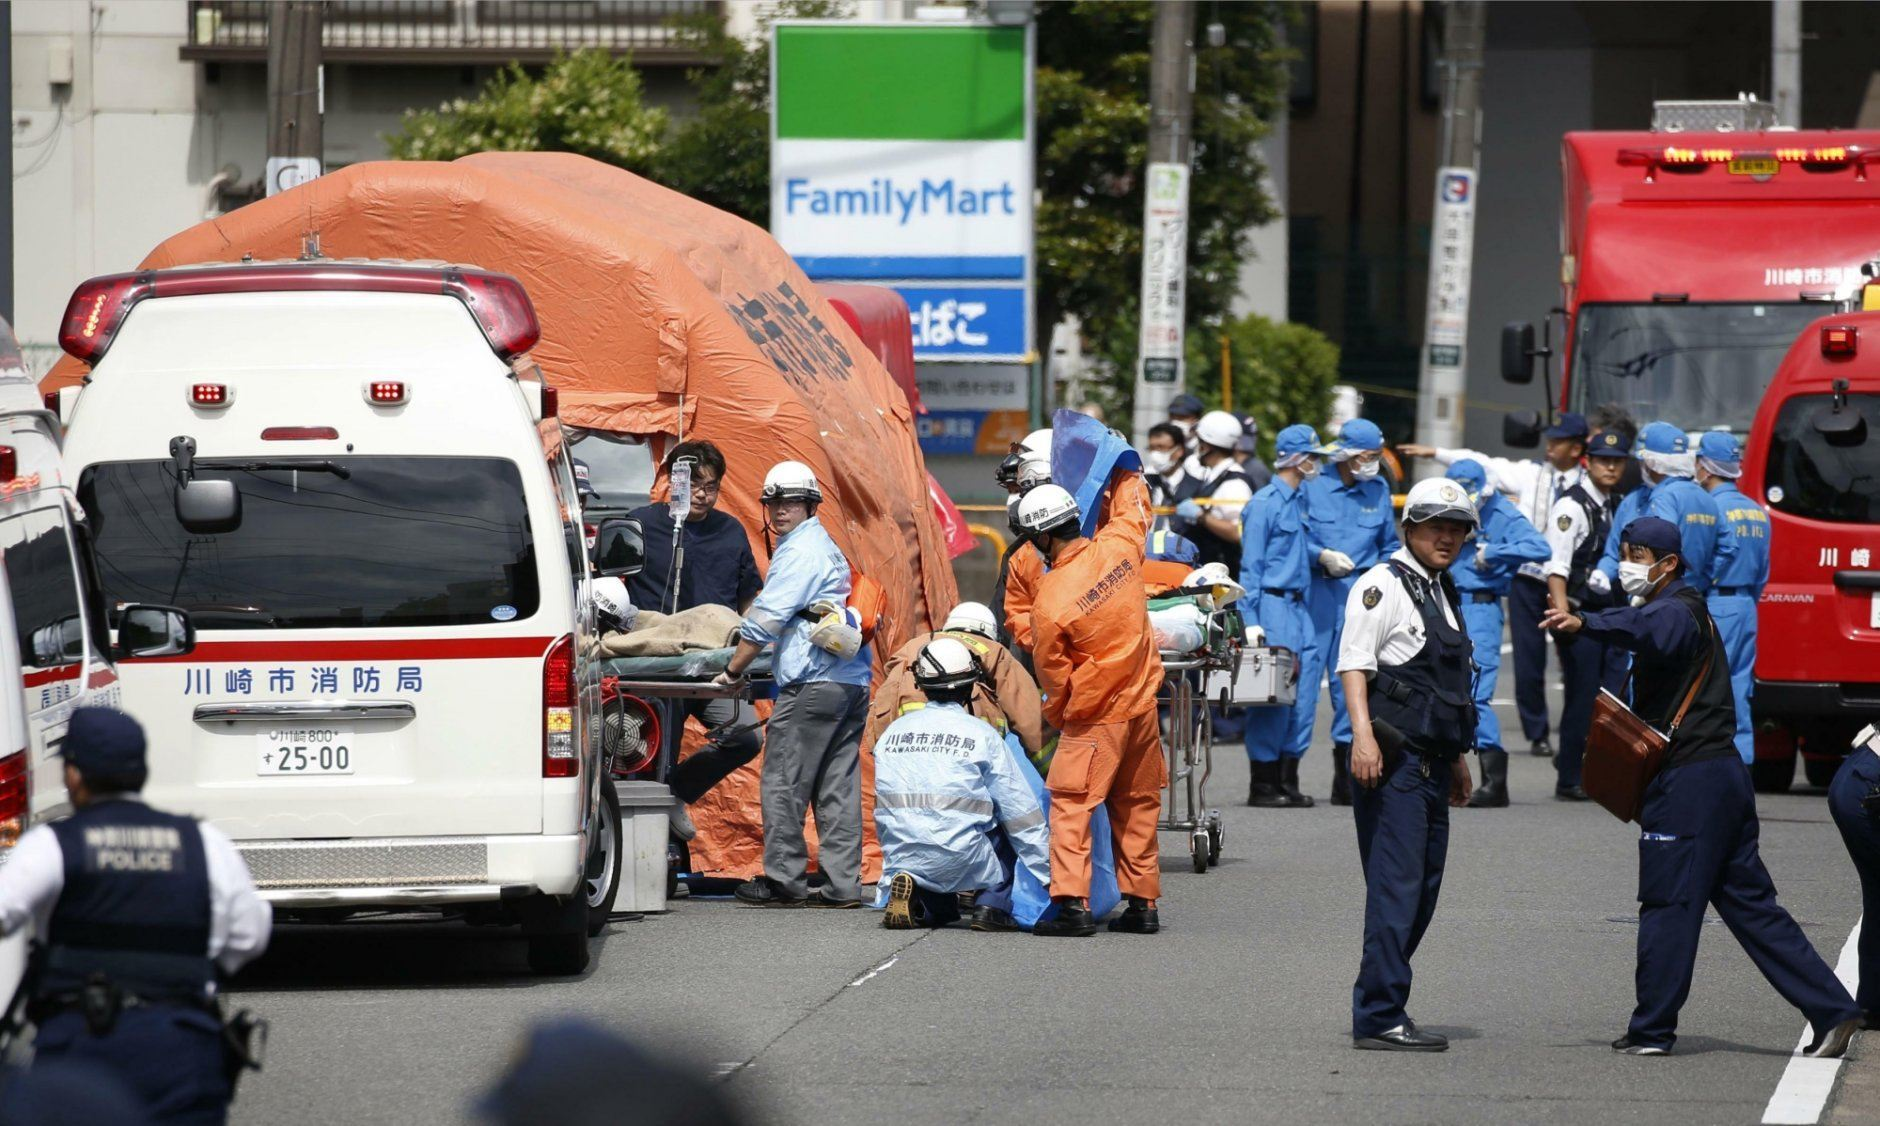 Rescuers work at the scene of an attack in Kawasaki, near Tokyo Tuesday, May 28, 2019. A man wielding a knife attacked commuters waiting at a bus stop just outside Tokyo during Tuesday morning's rush hour,  Japanese authorities and media said. (Kyodo News via AP)